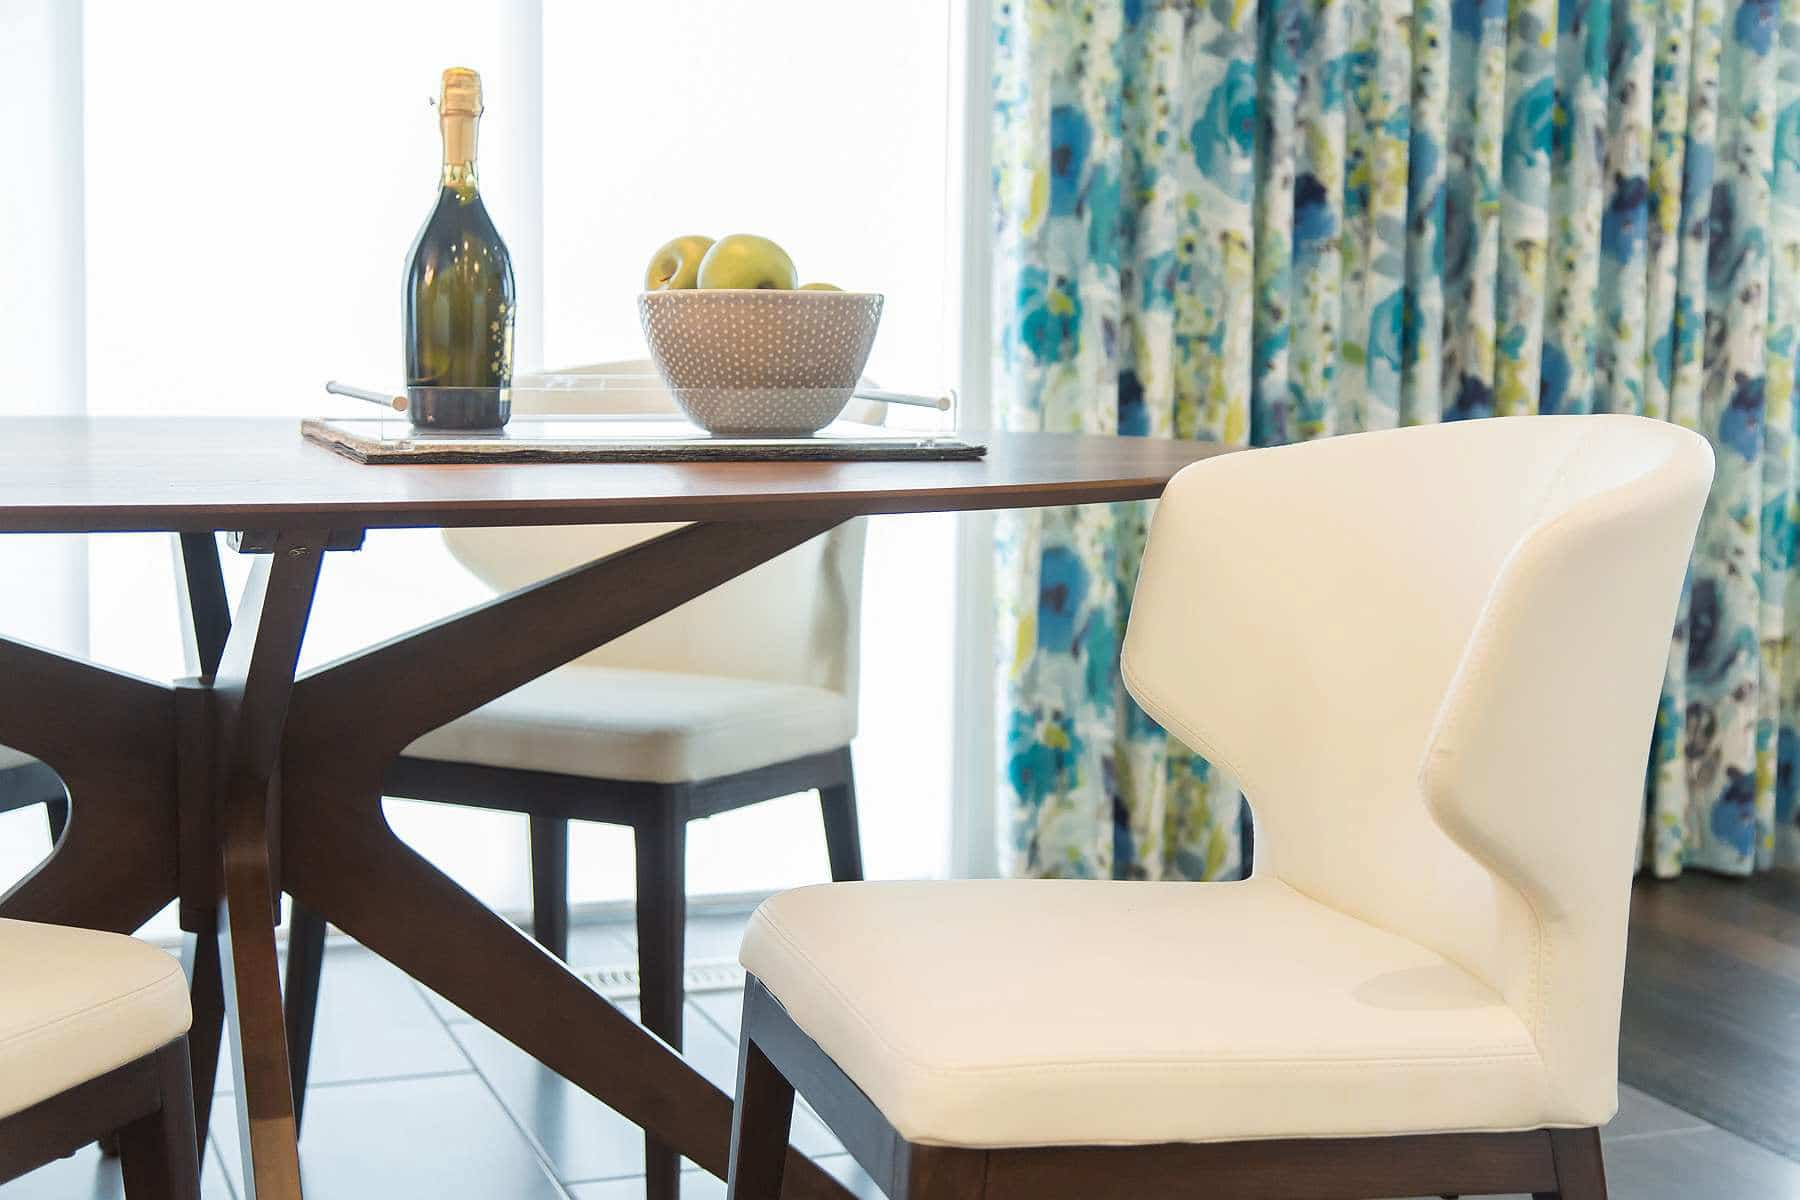 Kitchen dinette with curved white leather dining chairs and Vintage Amaya Linen drapes with blue, green and yellow floral pattern